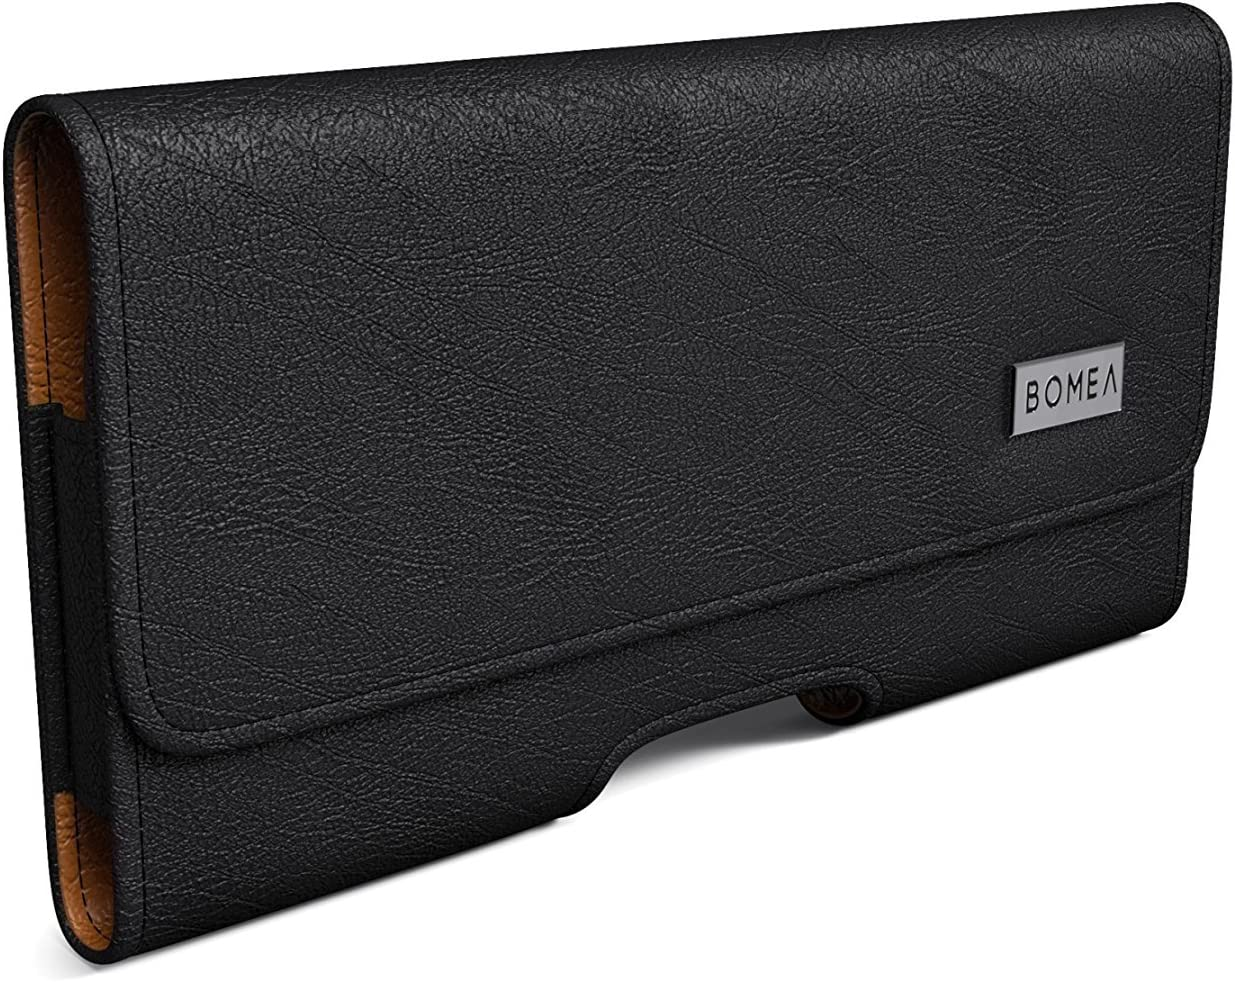 Bomea iPhone 11 Pro / Xs / 10 X Belt Holster, Premium Leather iPhone Belt Holder Case with Belt Clip and Loop Carrying Pouch for Apple iPhone 11 Pro / iPhone 10 / XS (Fits Phone with Other Case on)